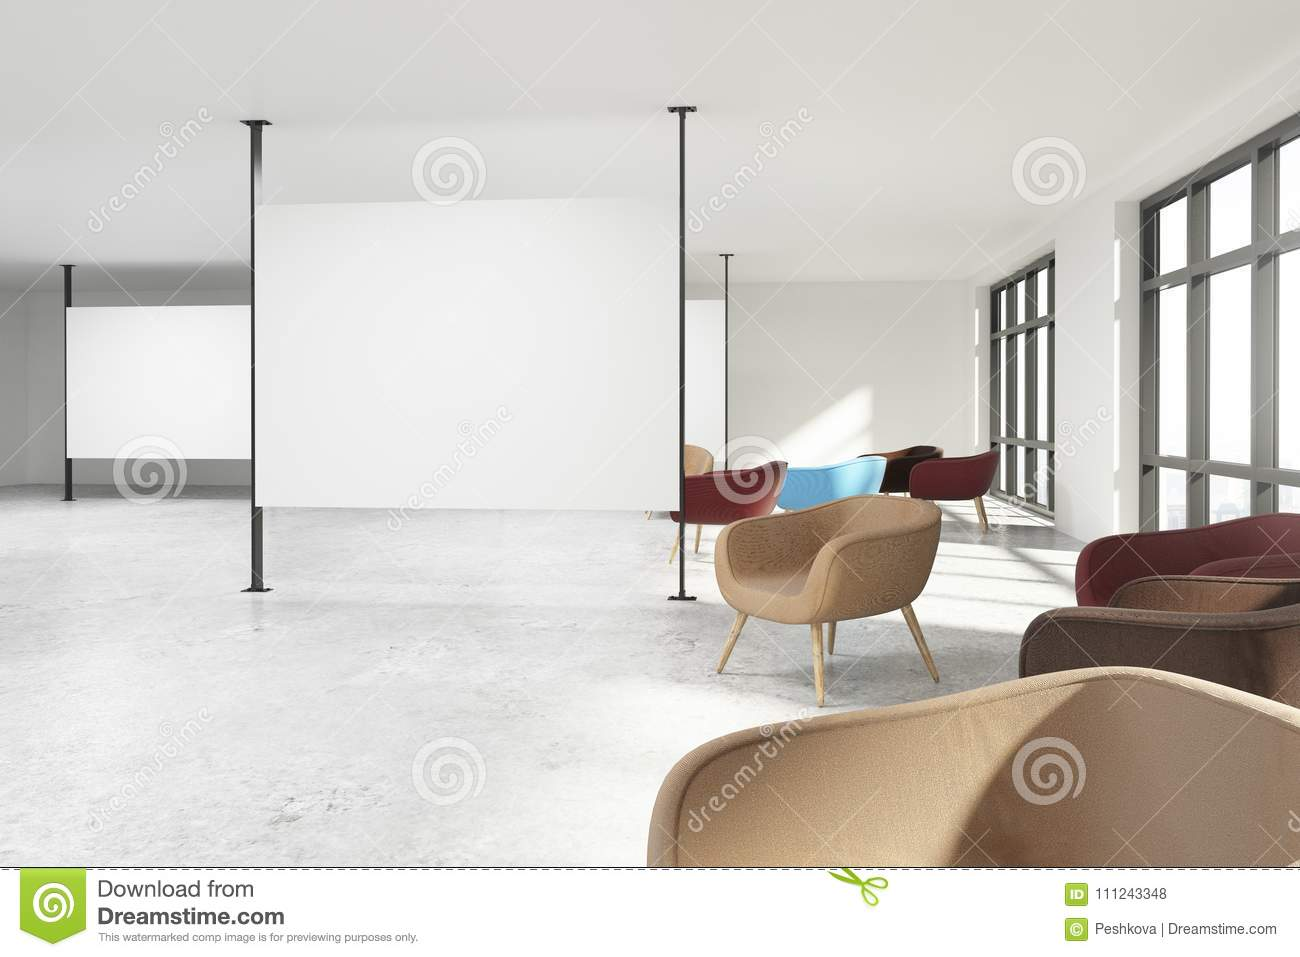 Stock image of modern interior design in scandinavian style with